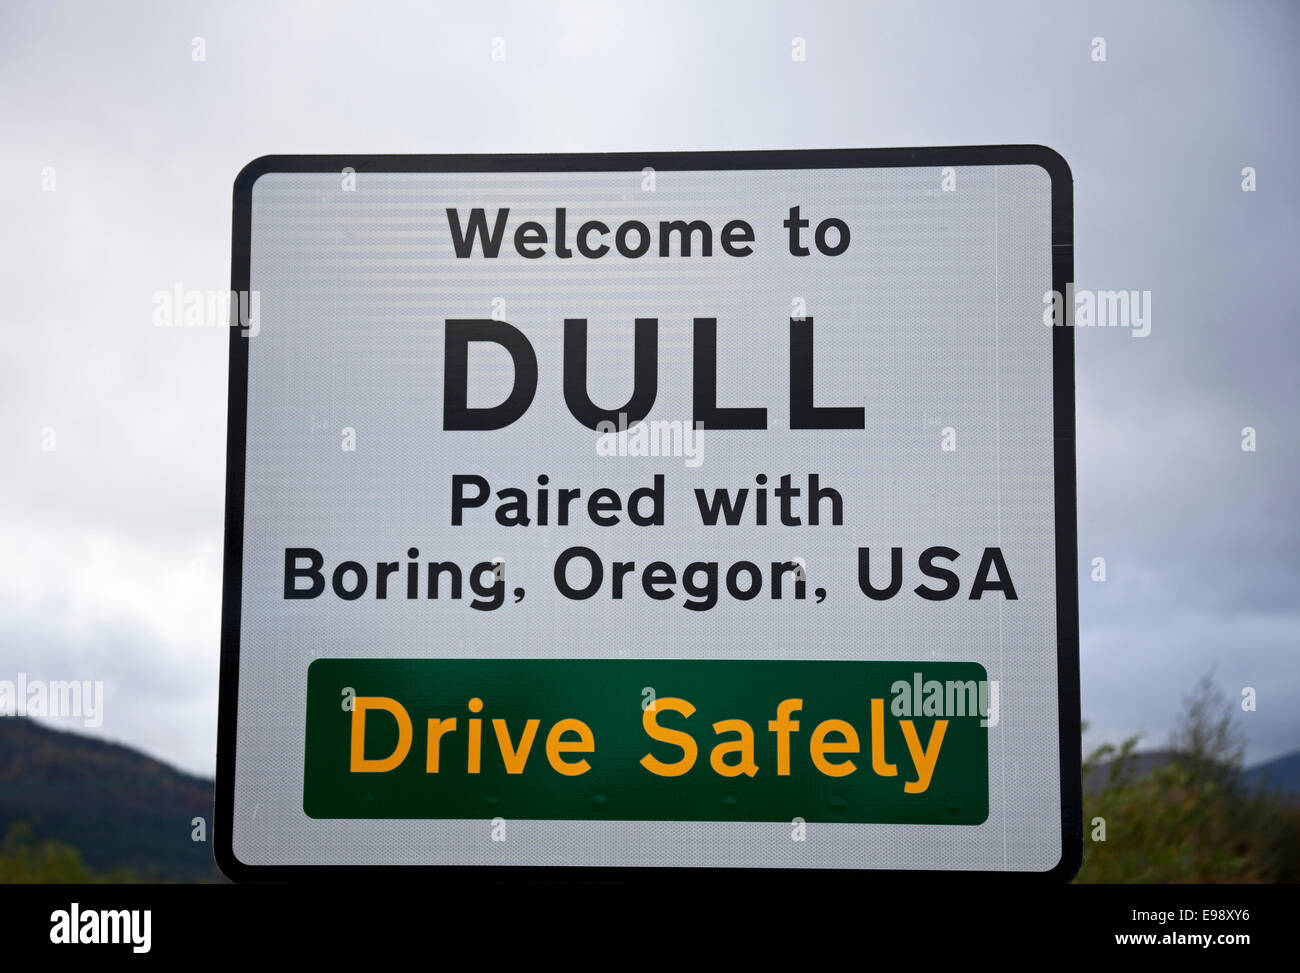 Road Sign for Dull, Perth and Kinross Perthshire Scotland - Stock Image